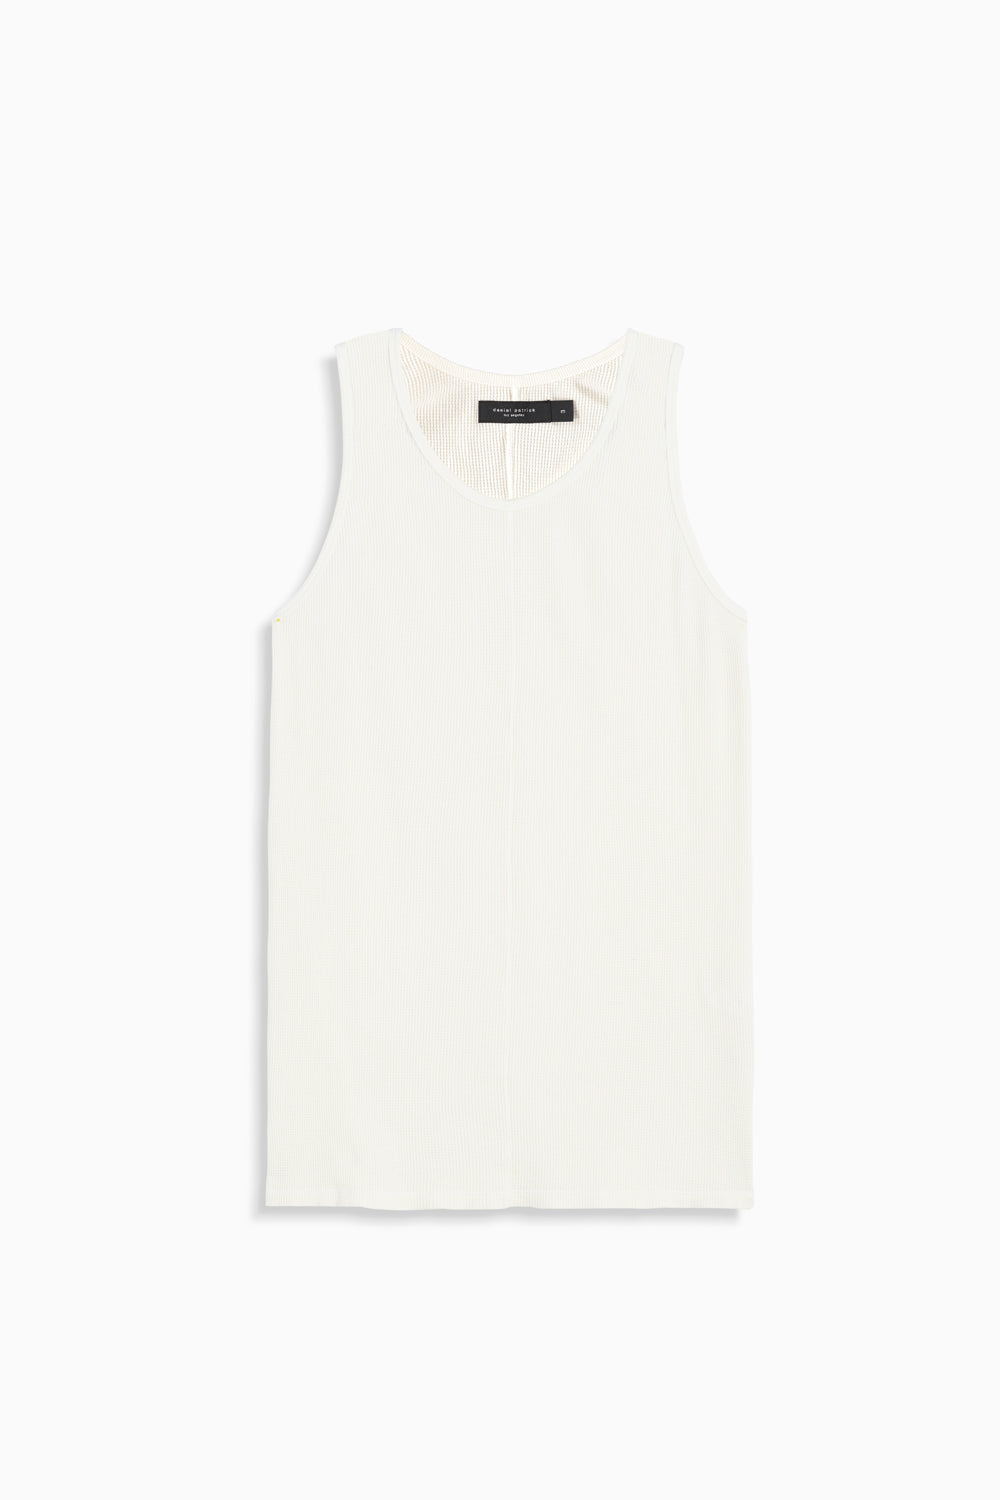 thermal tank top in natural by daniel patrick